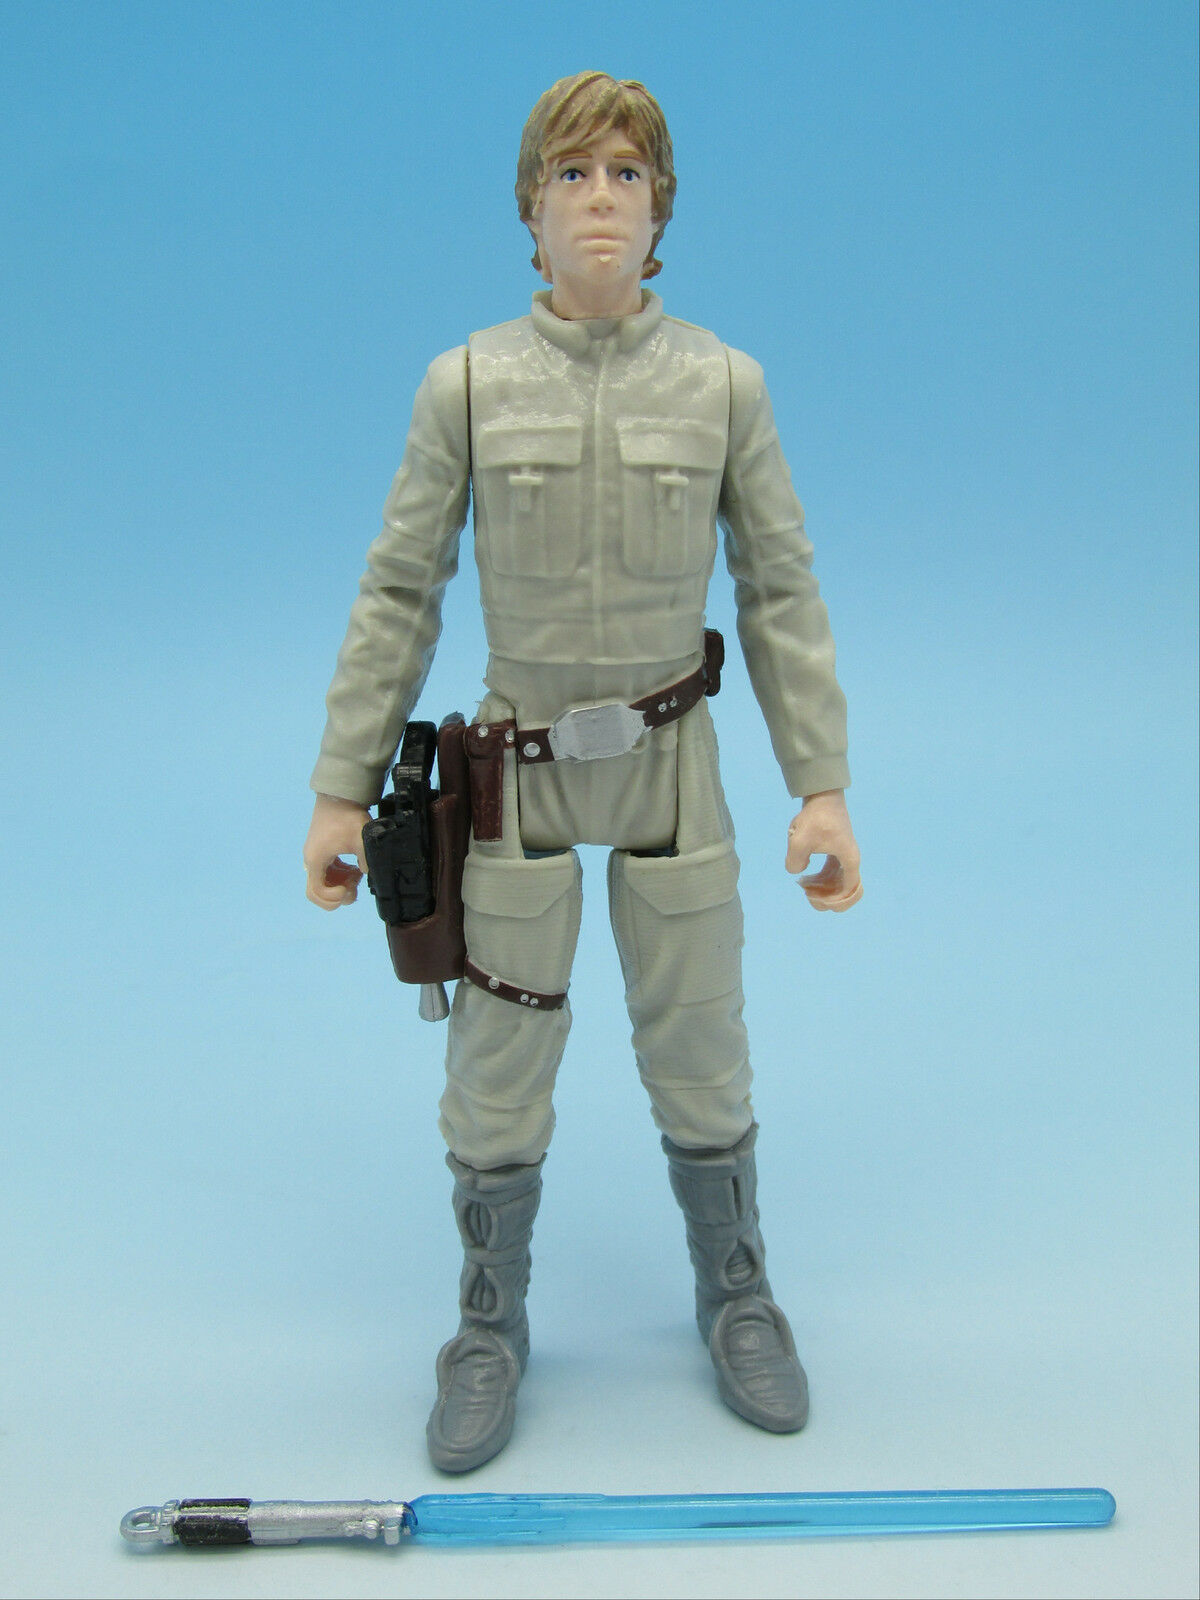 Star Wars Luke Skywalker - Bespin Outfit (Force Awakens 2015) Action 3.75